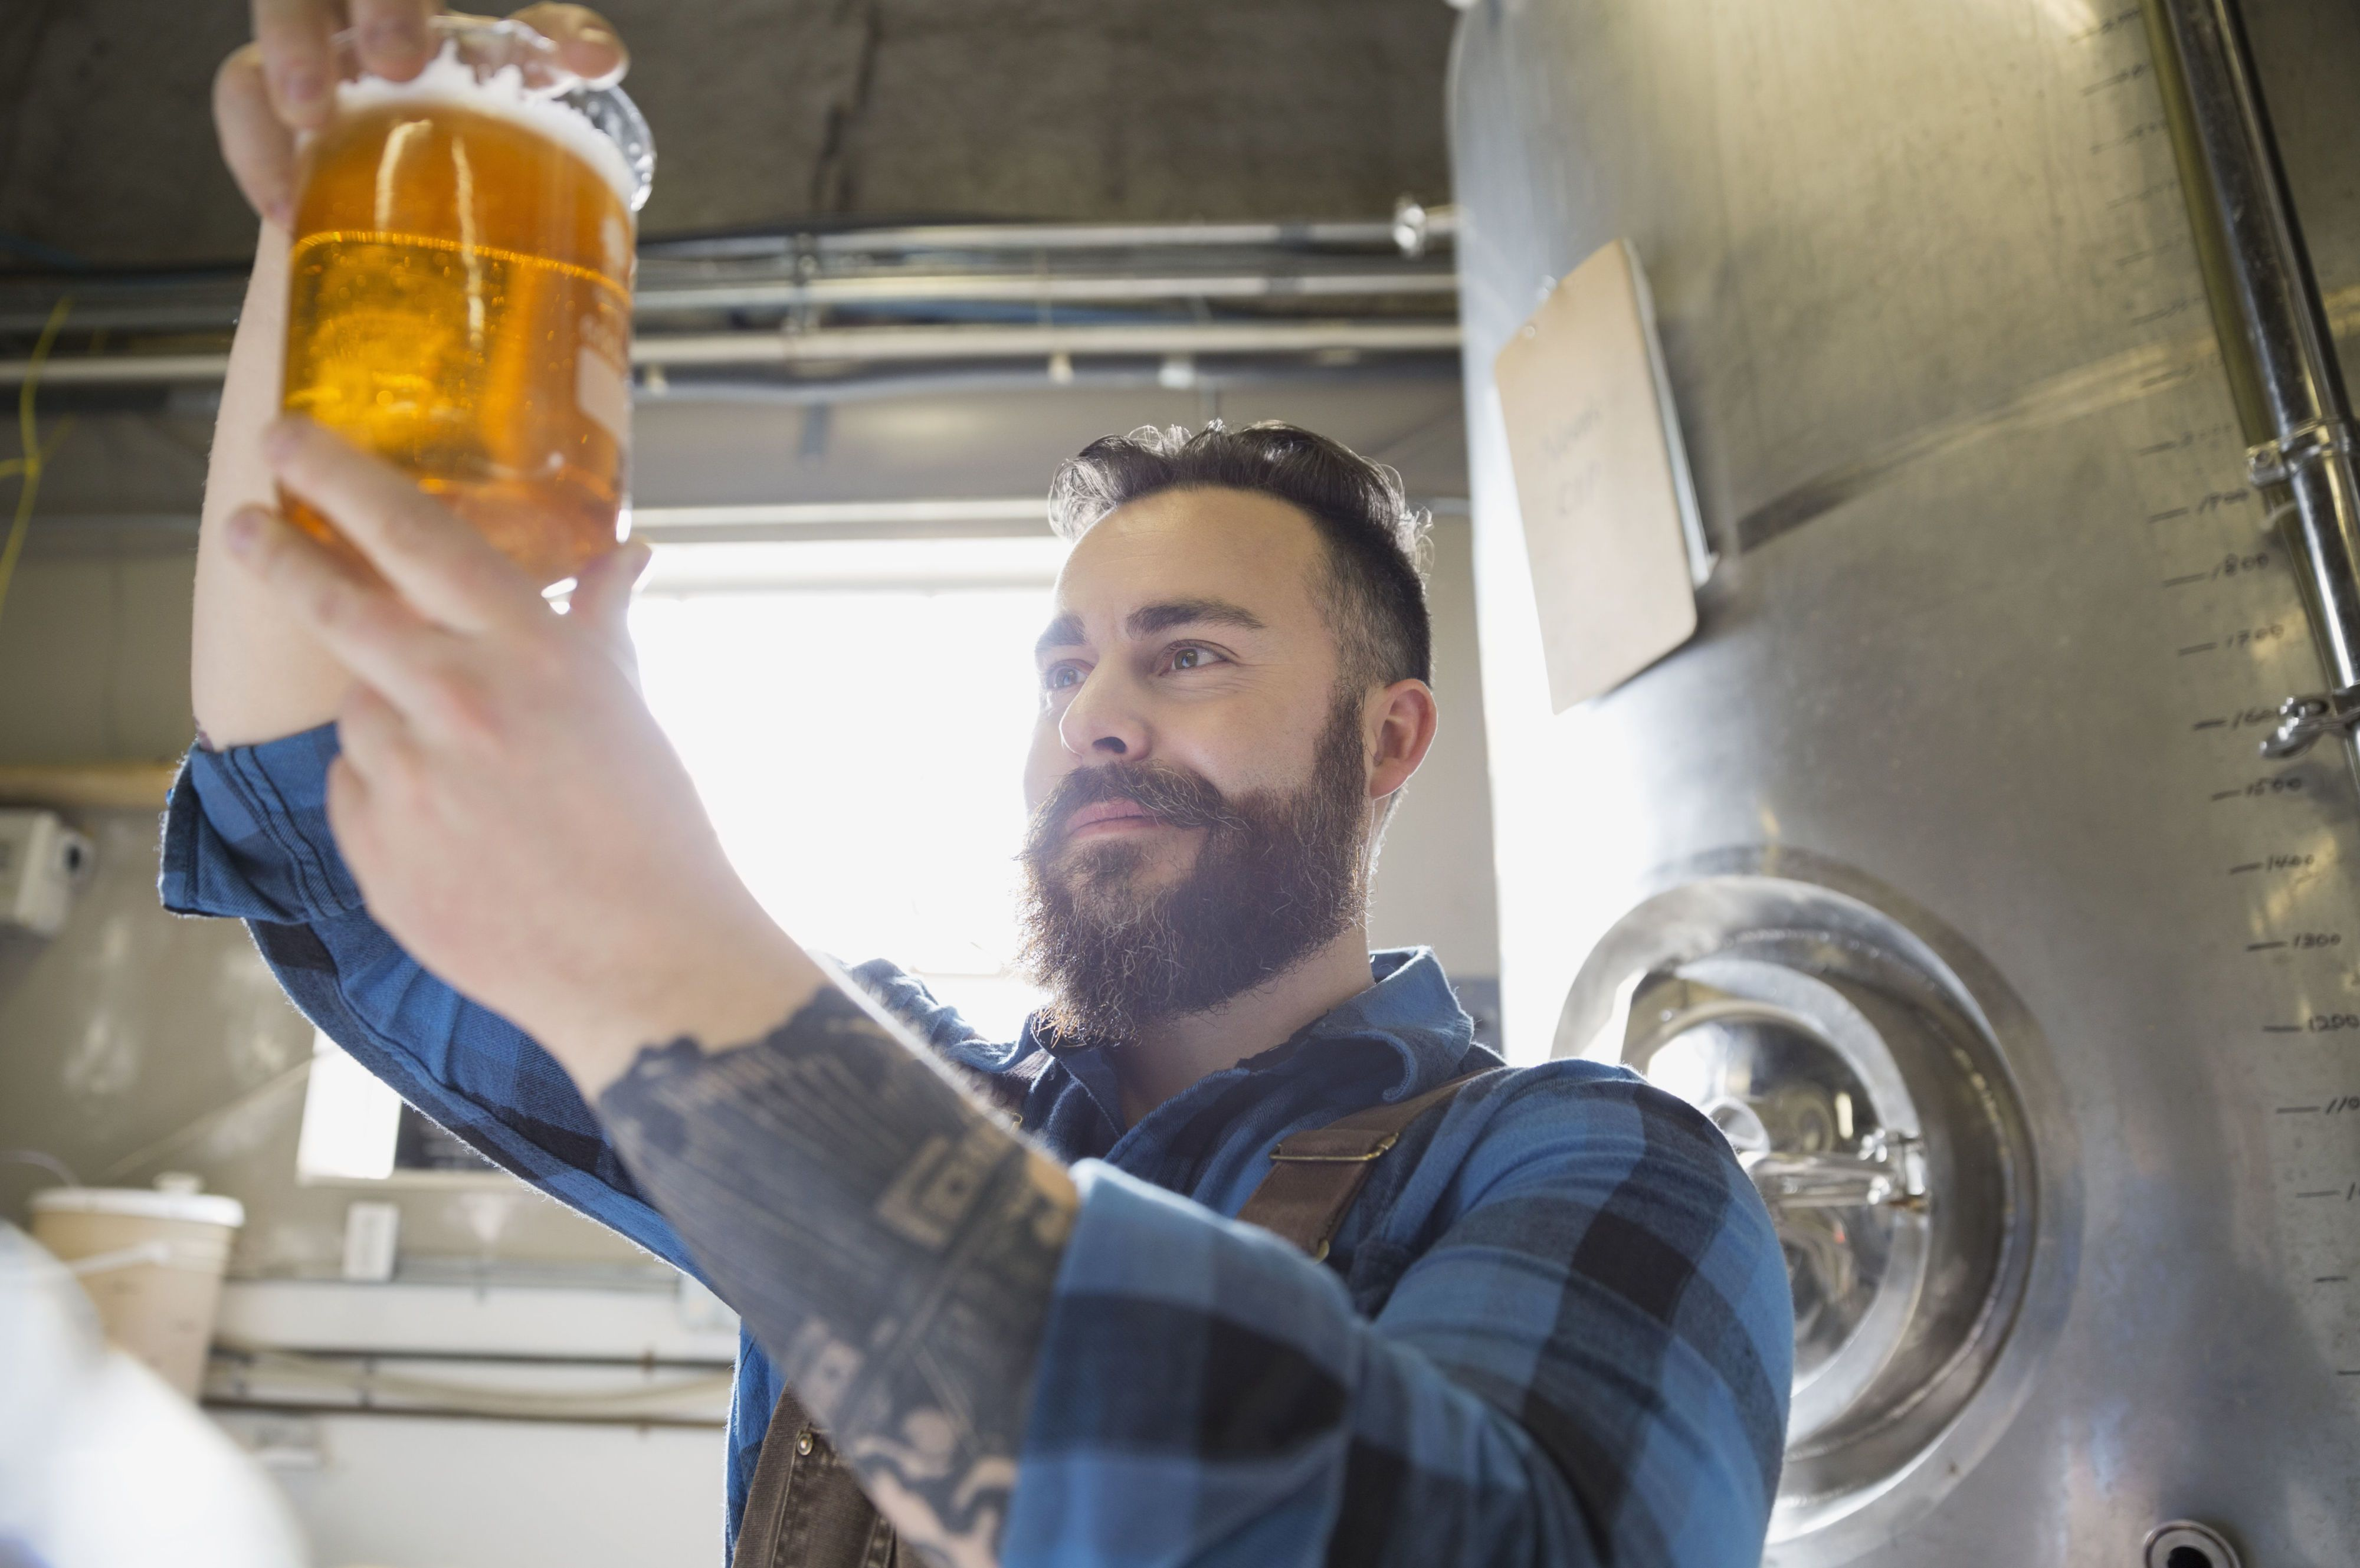 How Your World Works Podcast: 4 Things You May Not Know About Brewing Craft Beer